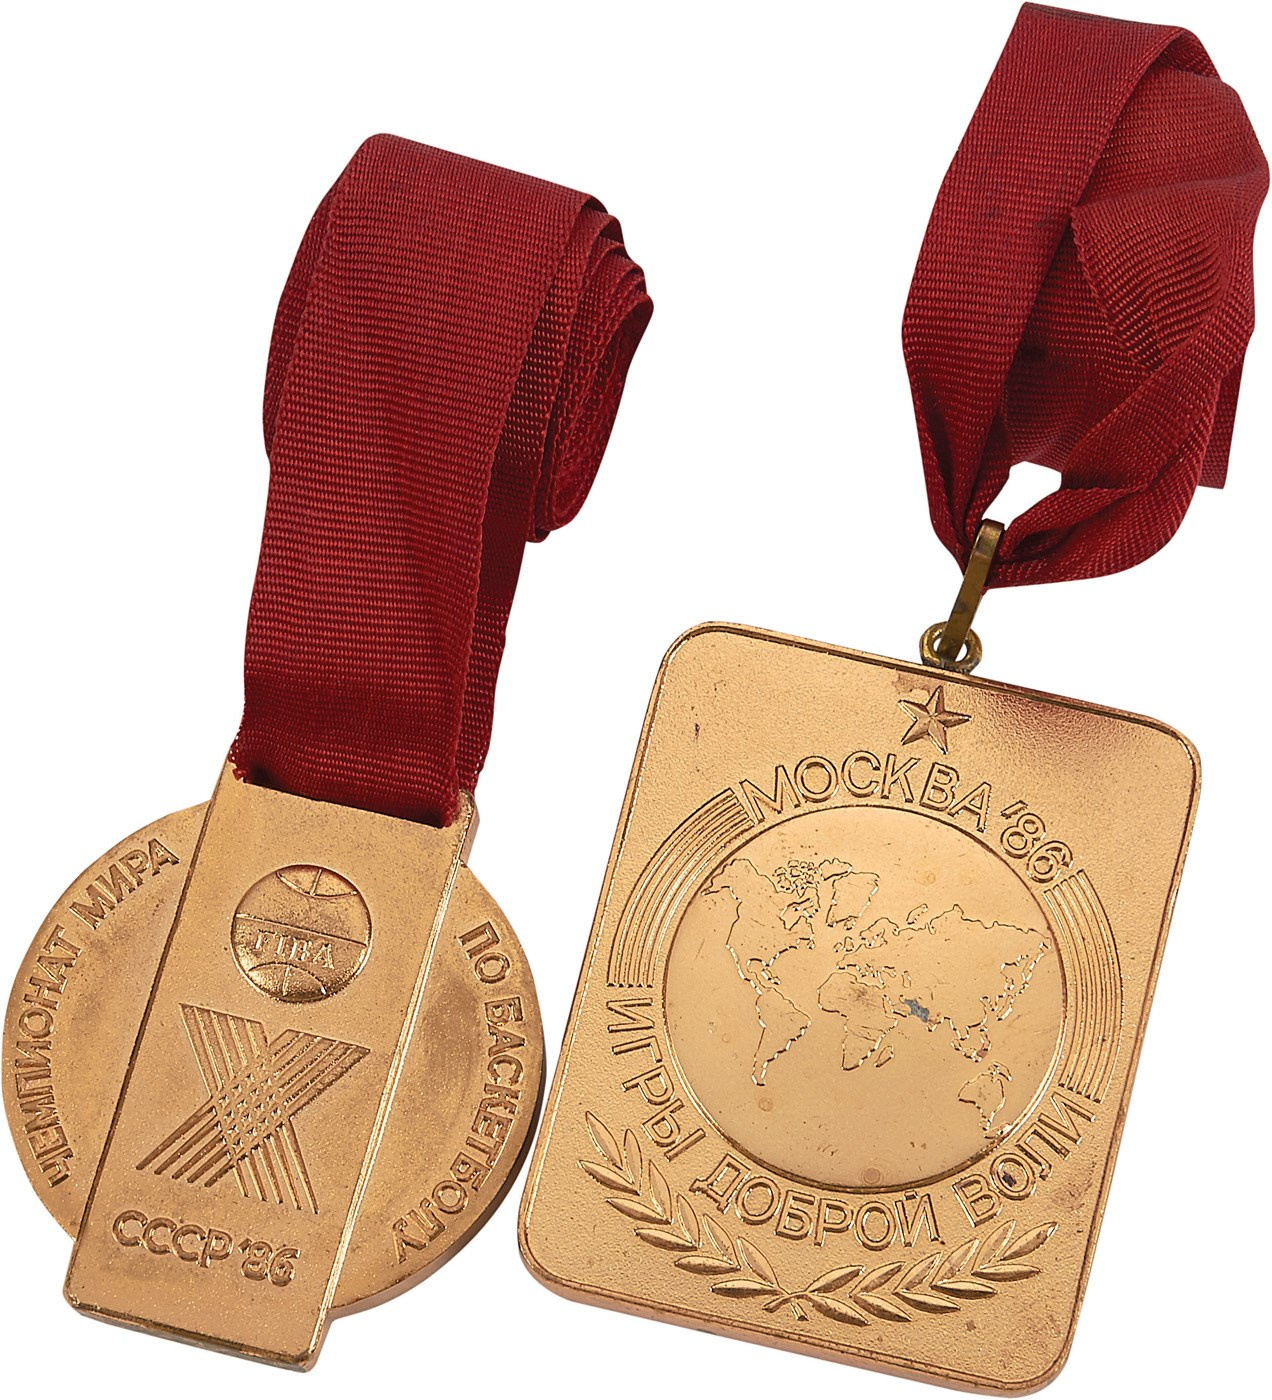 cf651619870 Teresa Edwards  1986 FIBA World Championship   Goodwill Games Gold Medals -  Both Beating USSR in Moscow